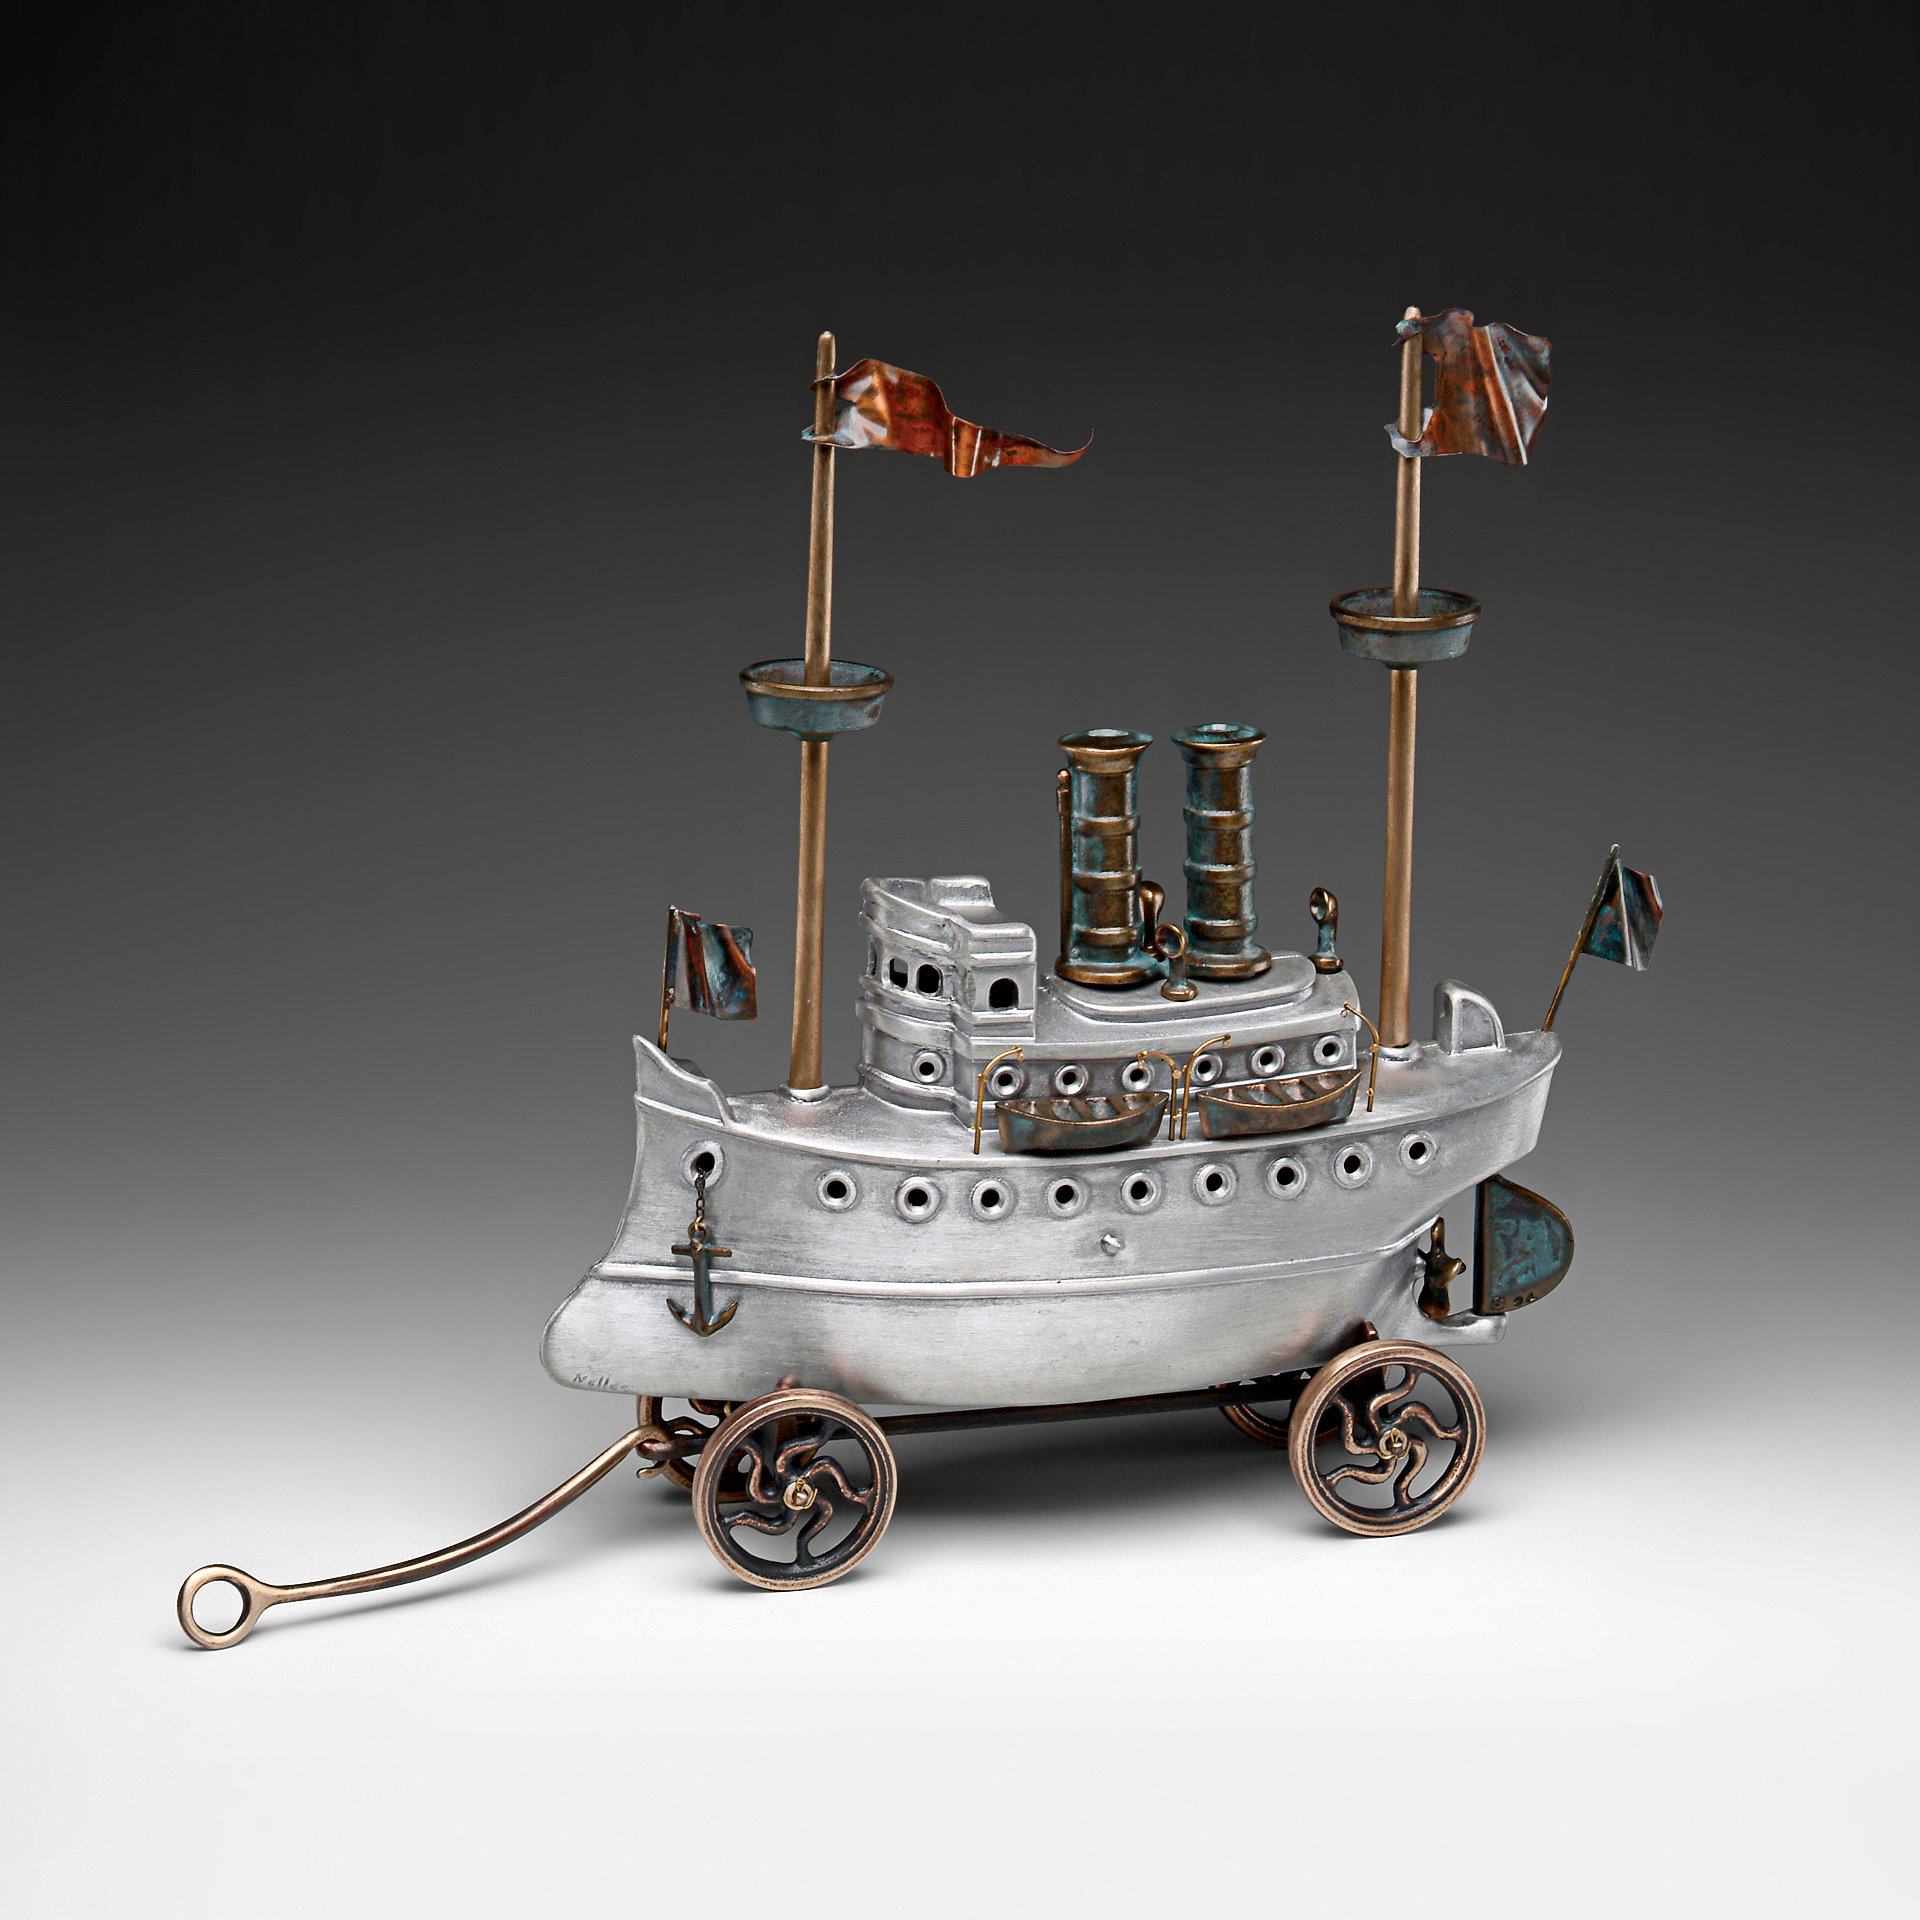 Steam Yacht - Metal Sculpture - by Scott Nelles